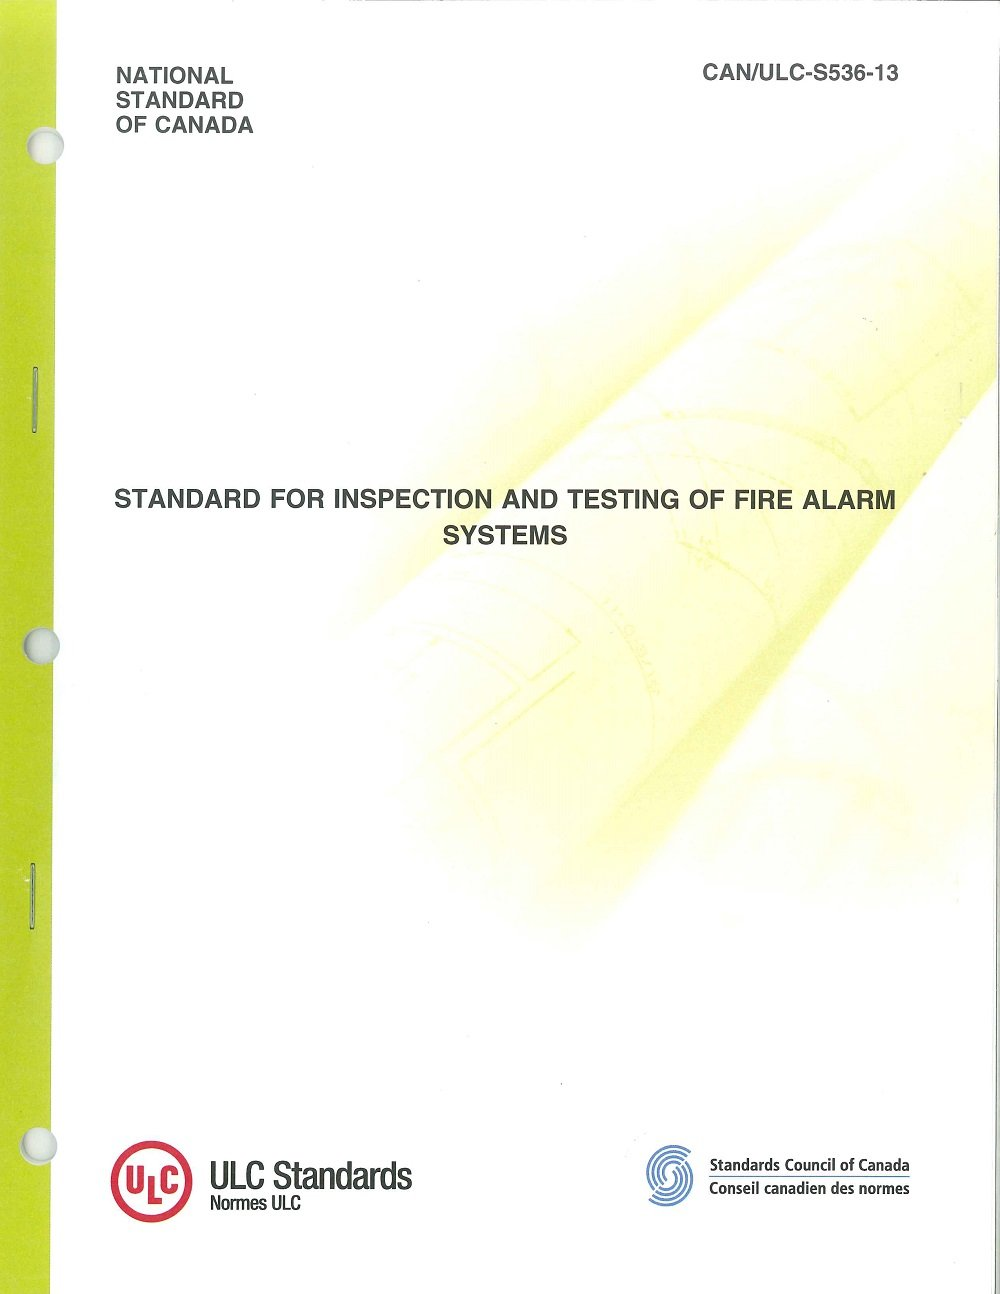 Standard for Inspection and Testing of Fire Alarm Systems National Standards of Canada